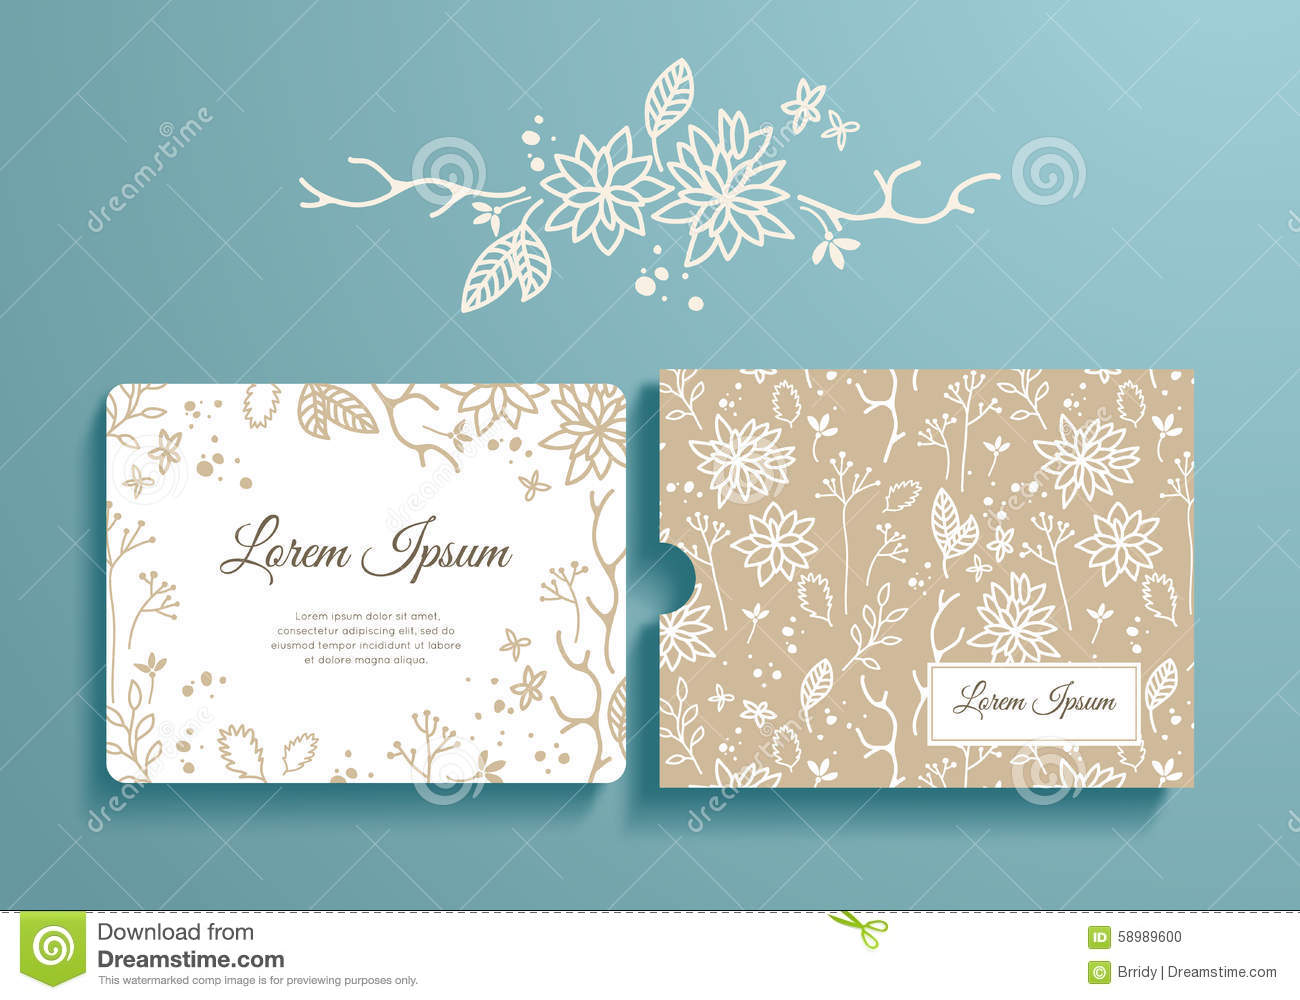 birthday invitation envelope designs ; floral-set-romantic-invitation-envelope-template-card-wedding-marriage-bridal-birthday-valentine-s-day-58989600